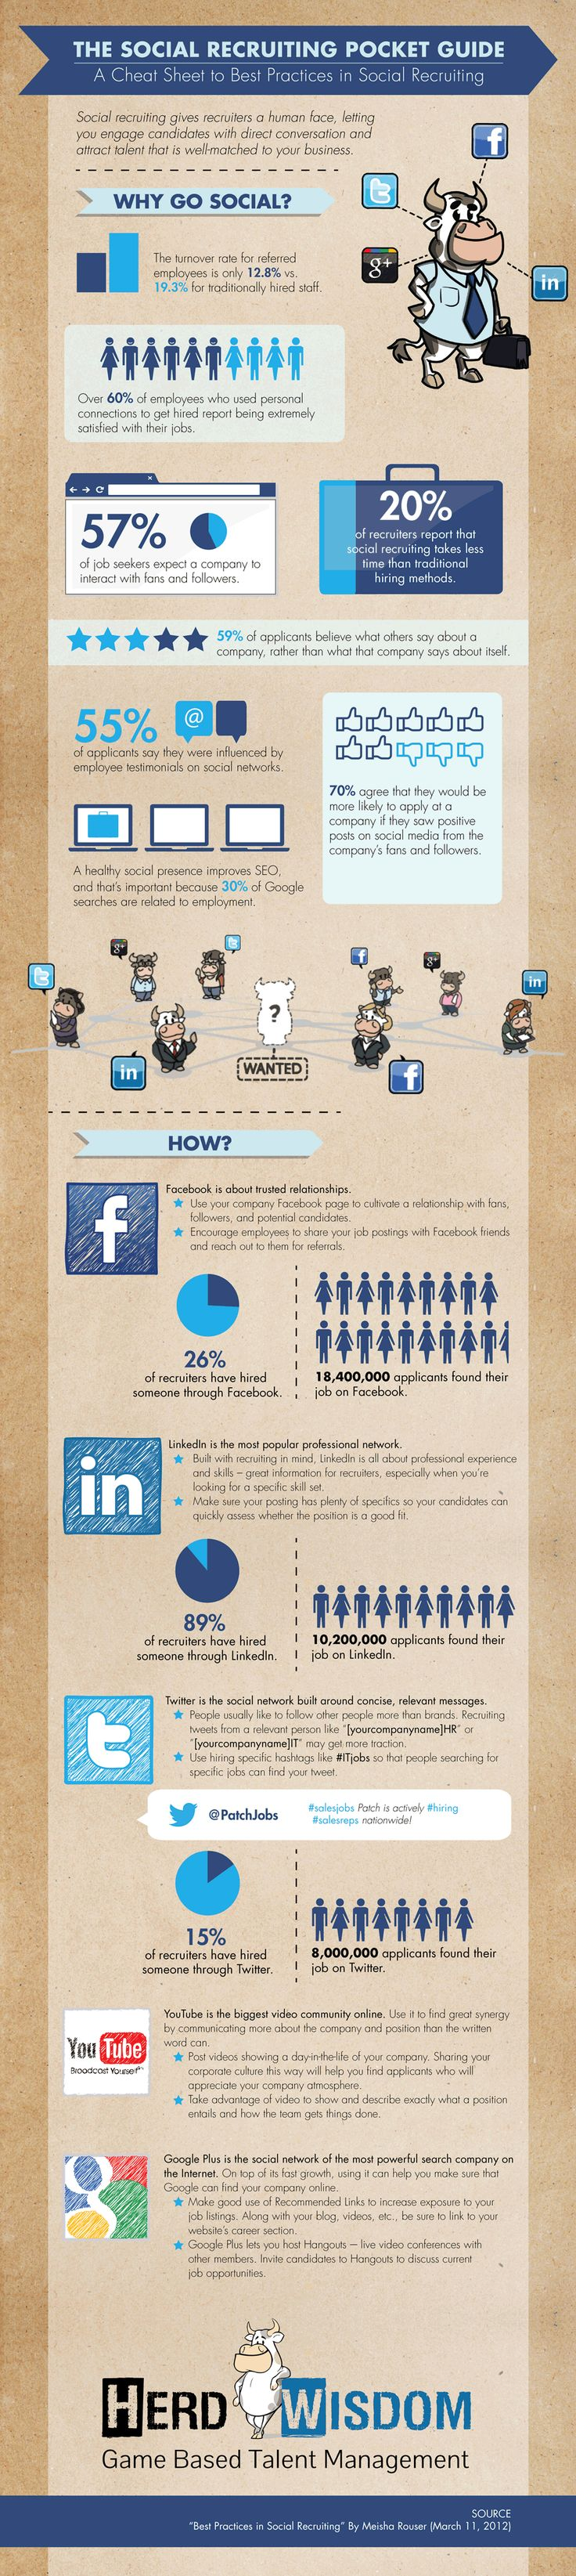 The Social Recruiting Pocket Guide [infographic]